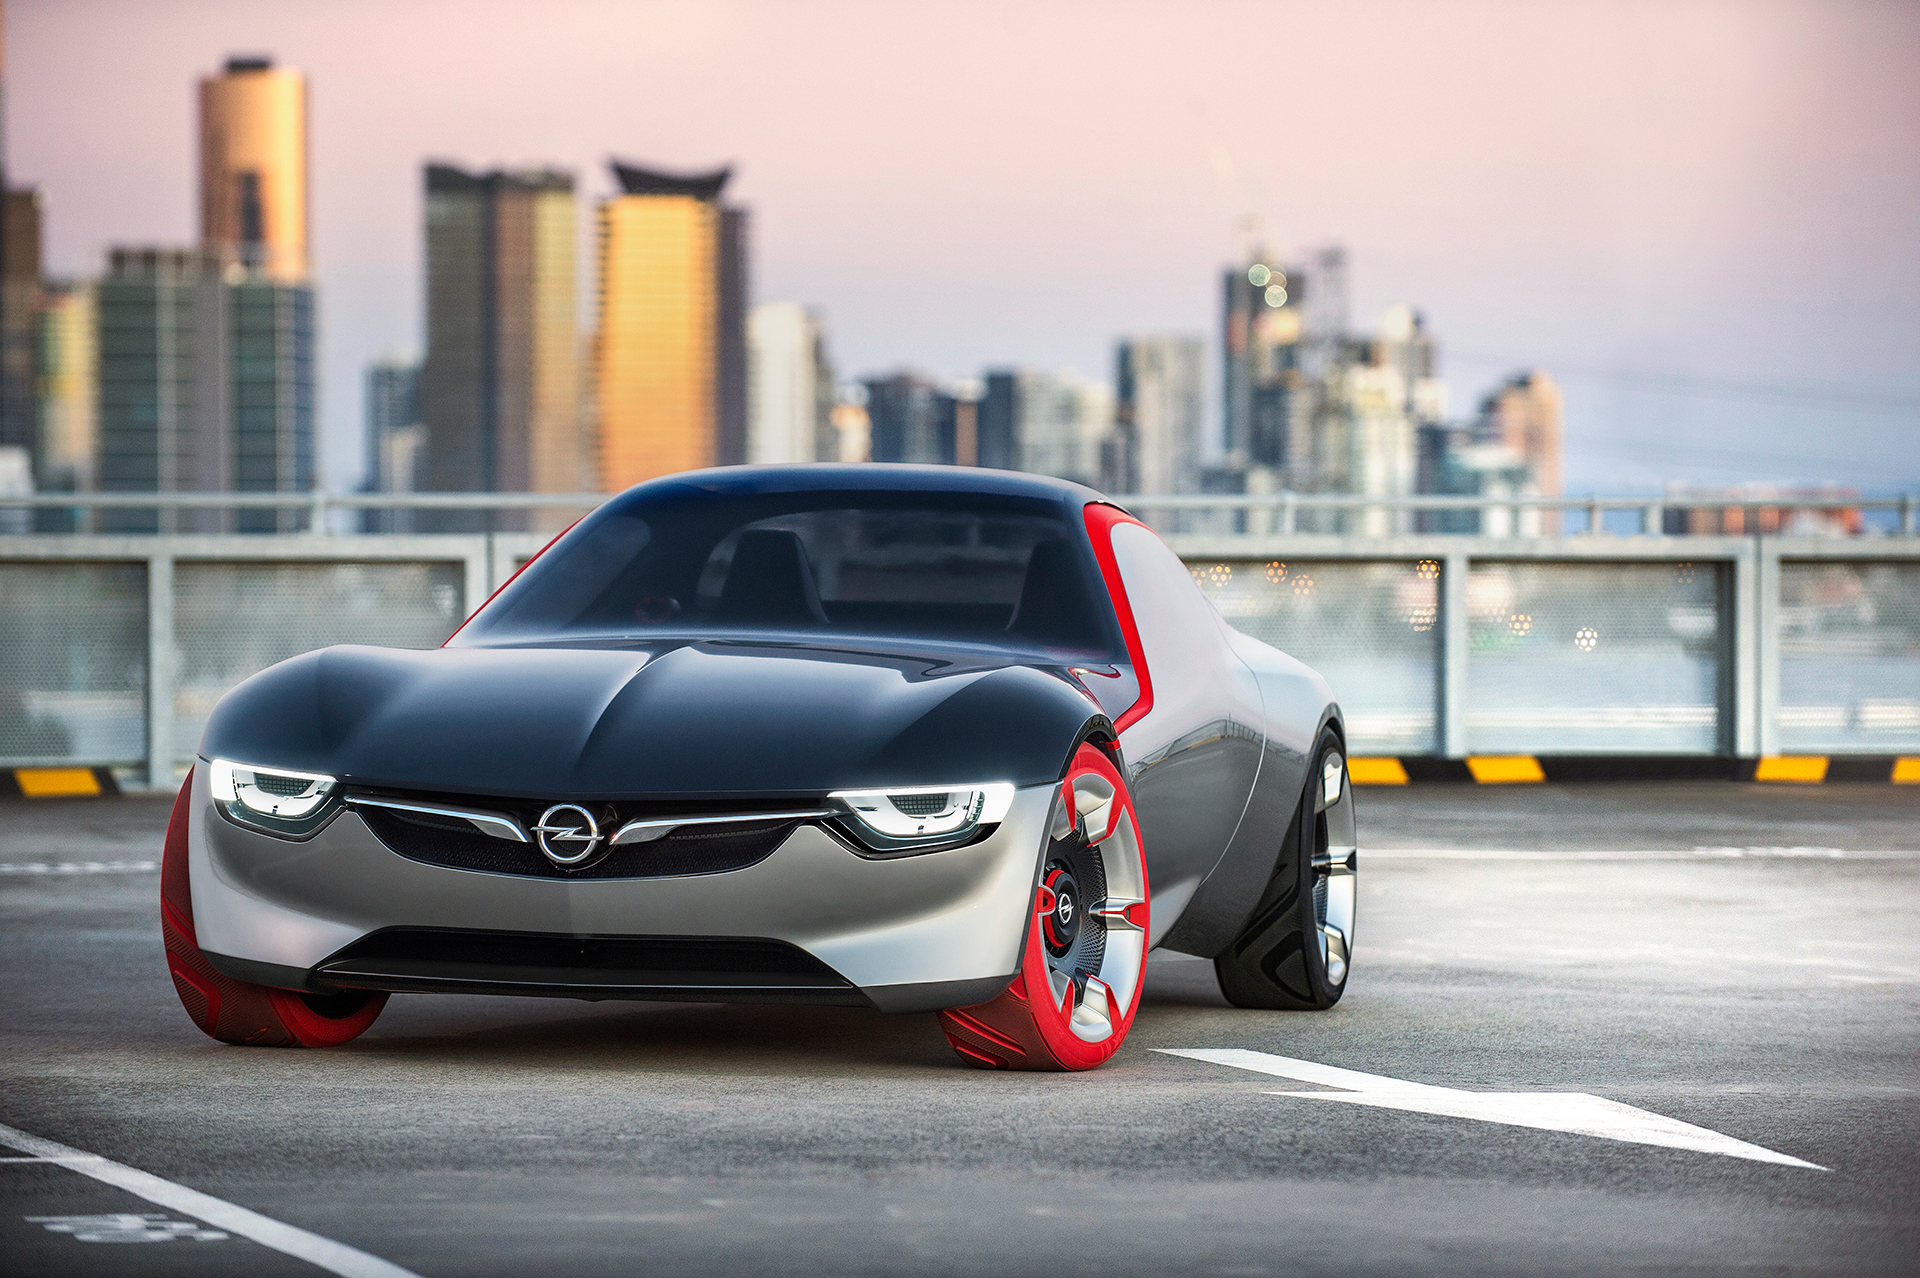 Opel GT Concept 2016 avant / front - Image - GM Company.